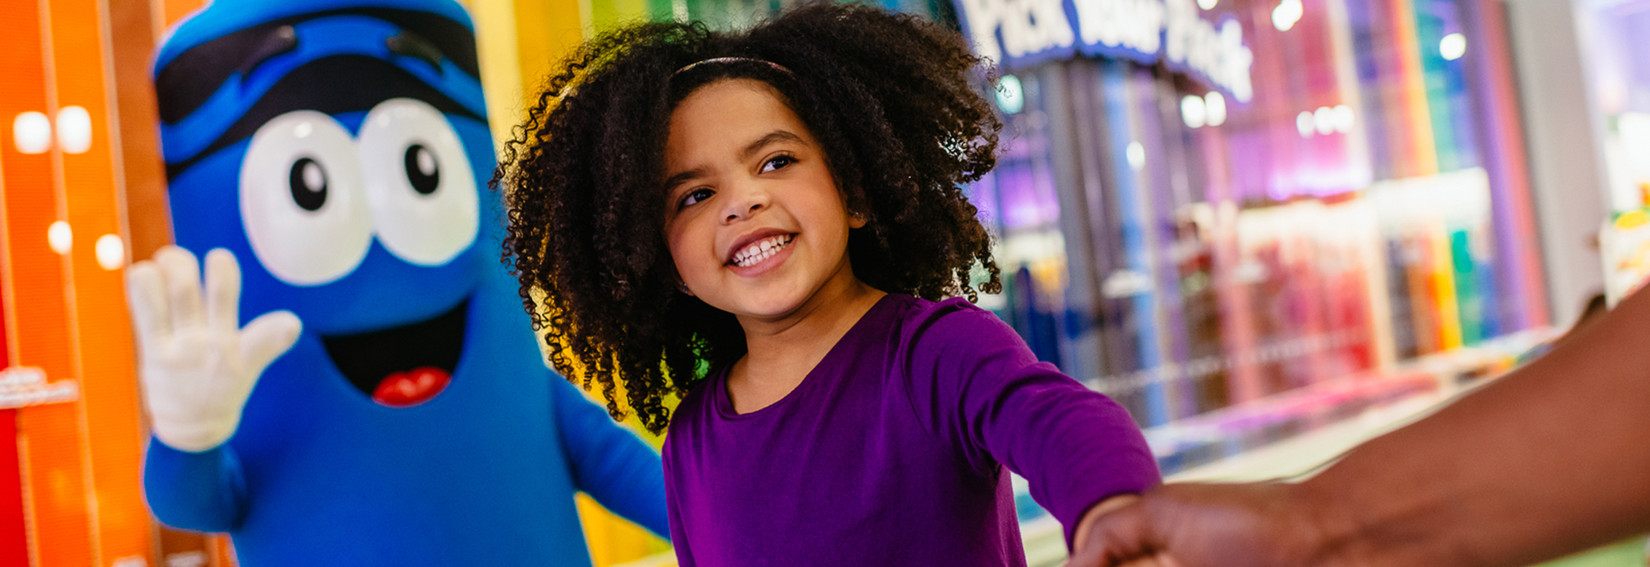 Family Day Trips and Destinations in NY, NJ, CT, MA, and PA